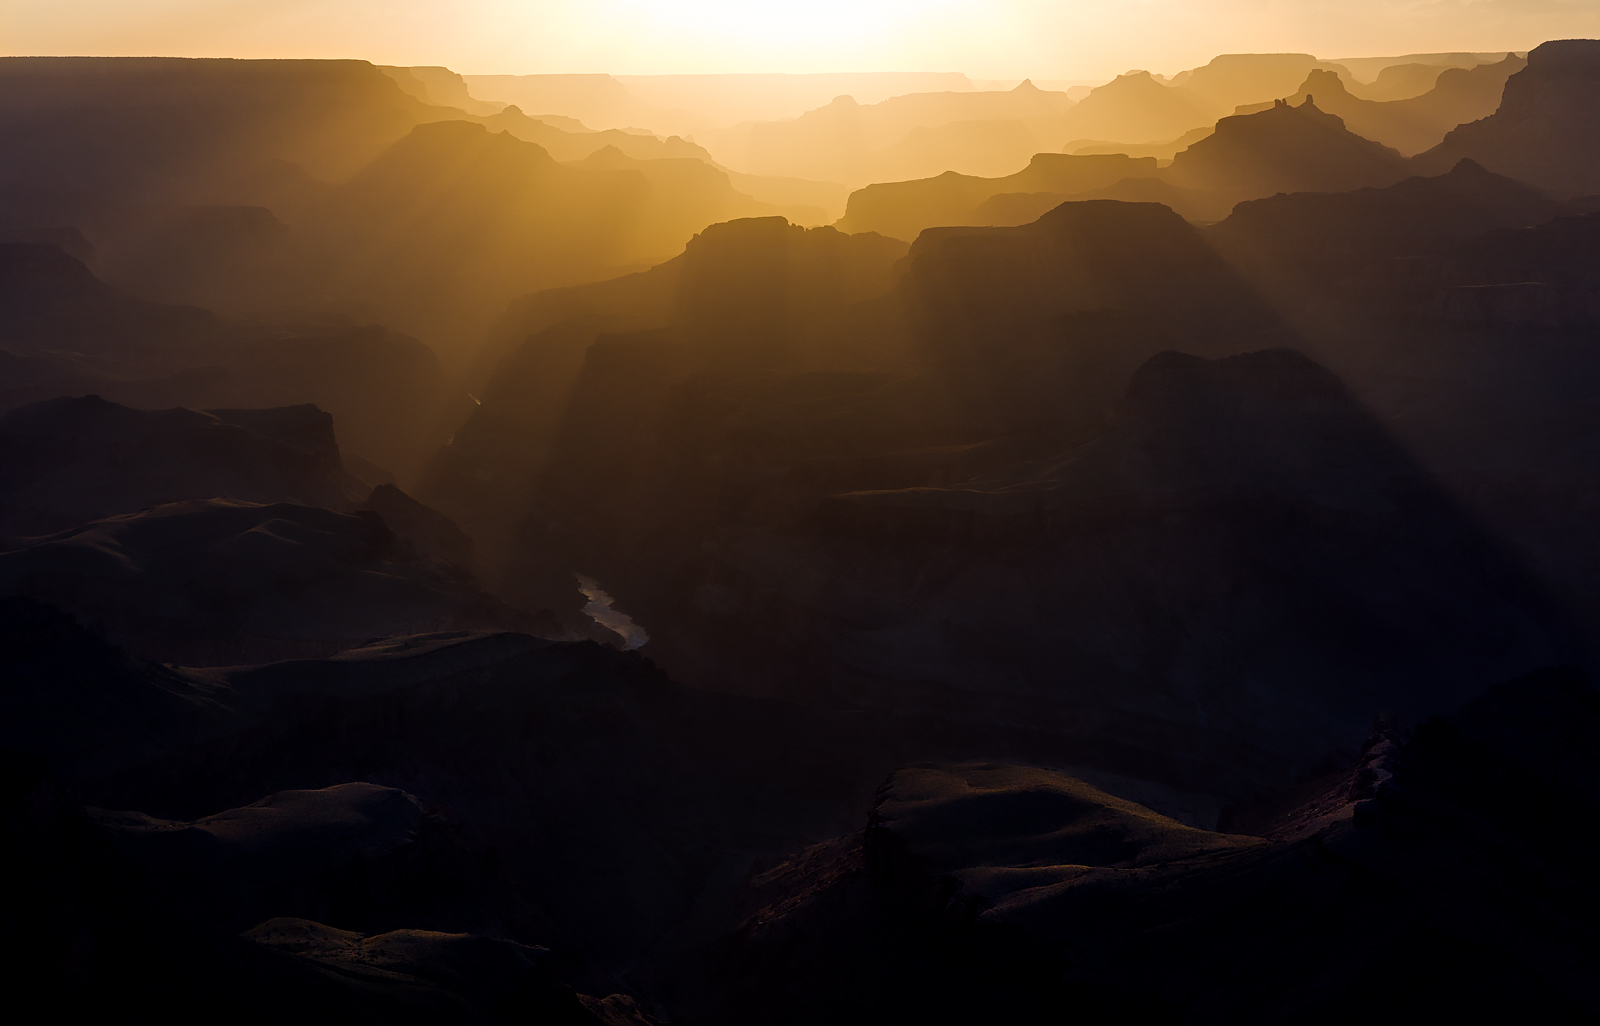 Sunset at Lipan Point, Grand Canyon, Arizona